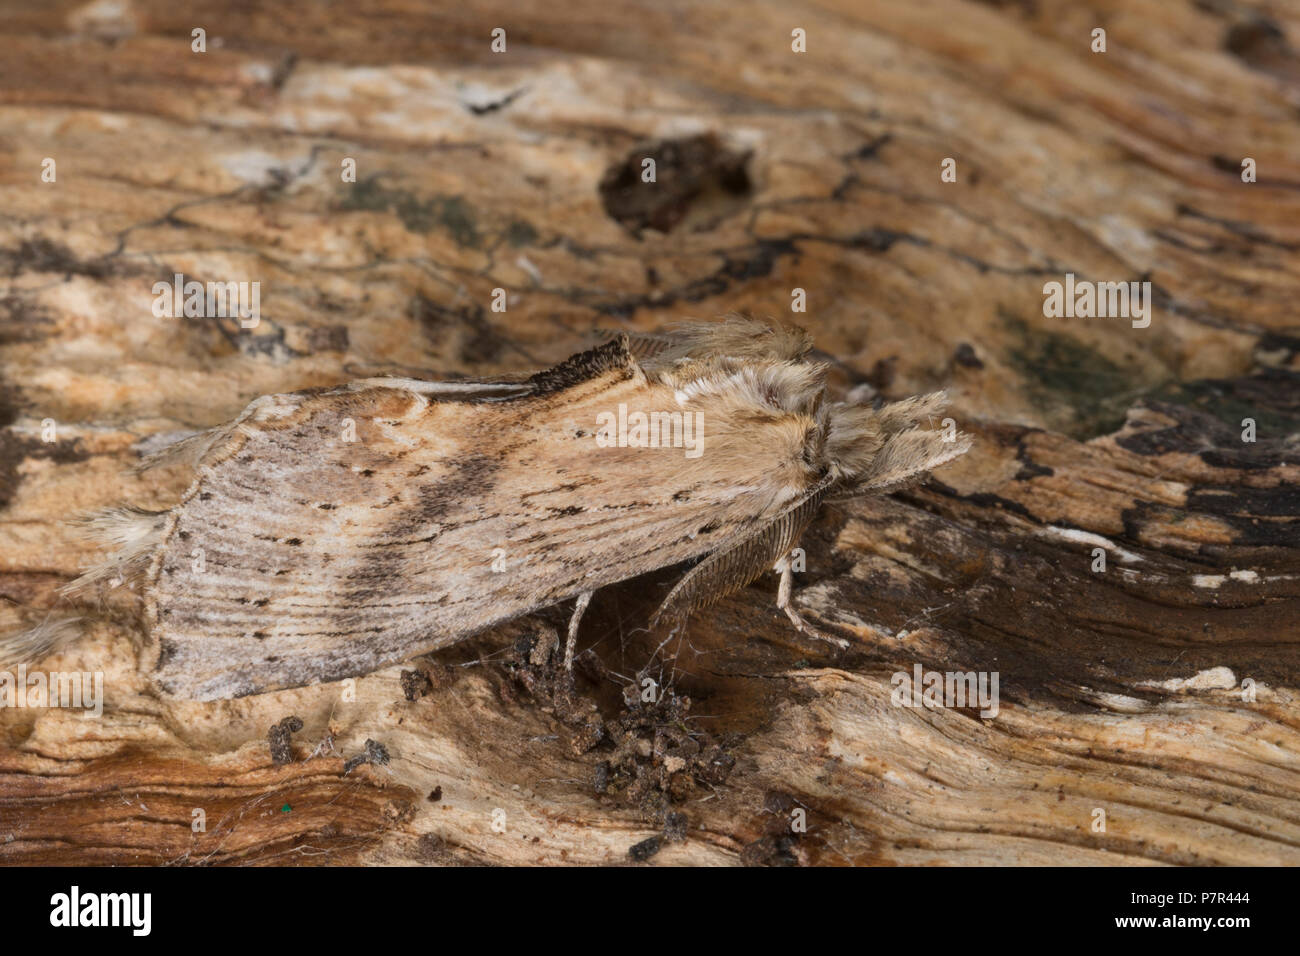 Palpen-Zahnspinner, Palpenzahnspinner, Palpenspinner, Palpen-Spinner, Pterostoma palpina, Pterostoma palpinum, Pale Prominent, Le Museau, Zahnspinner, - Stock Image